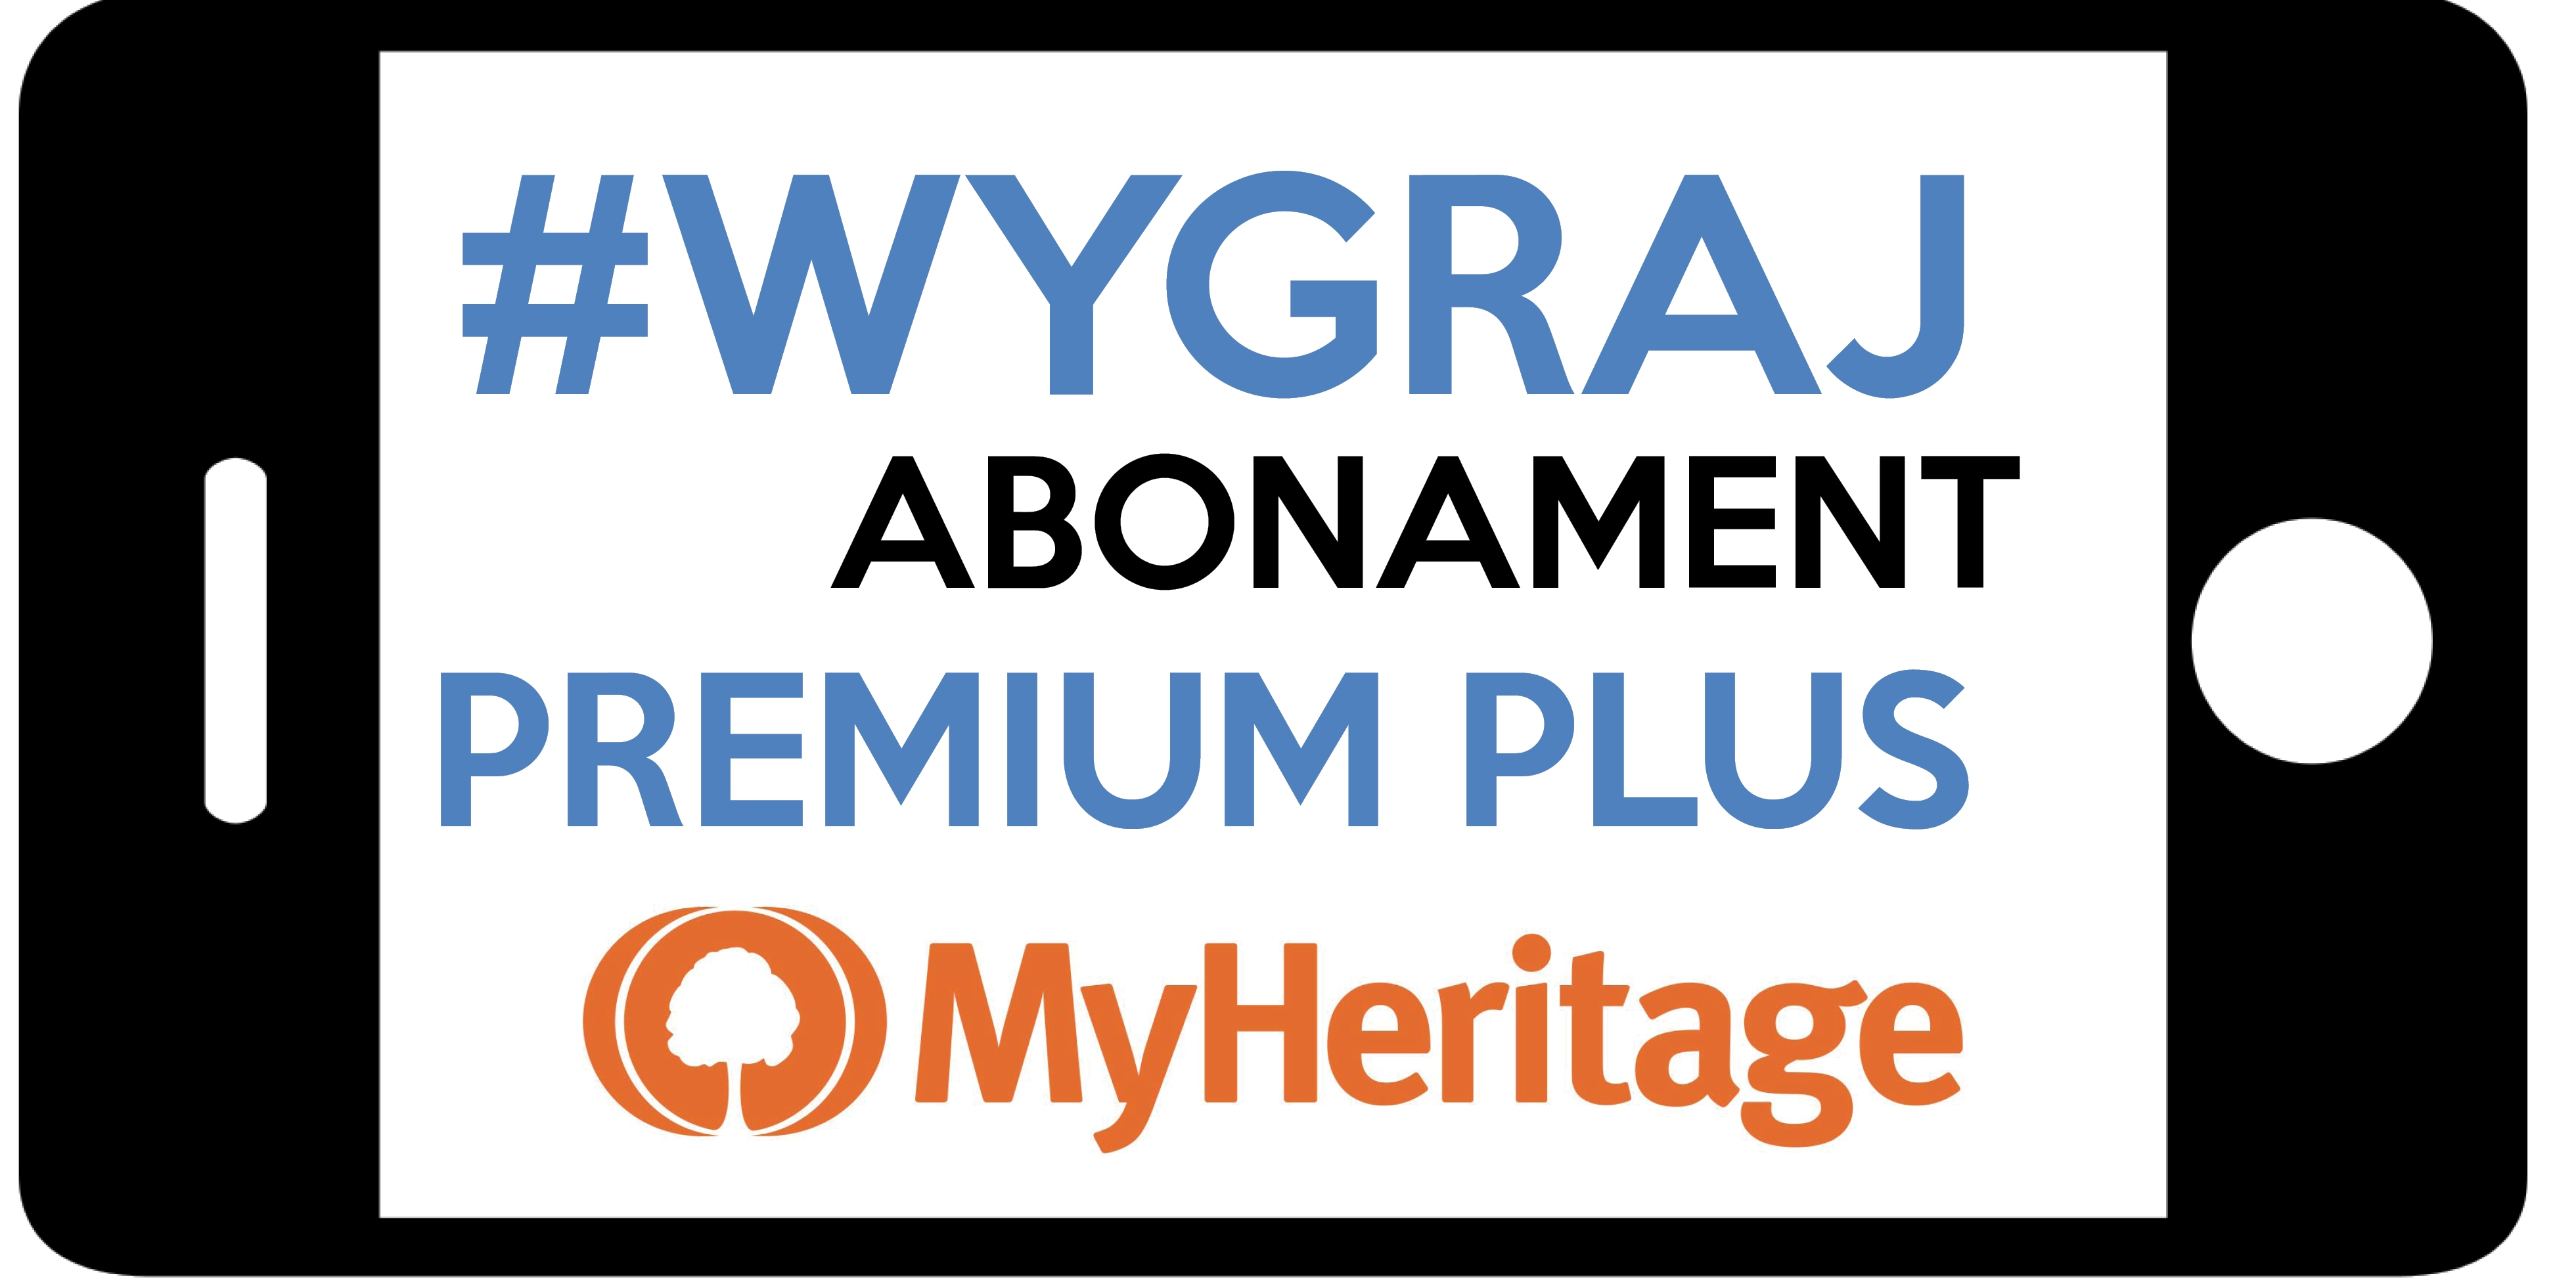 Expired MyHeritage Coupons